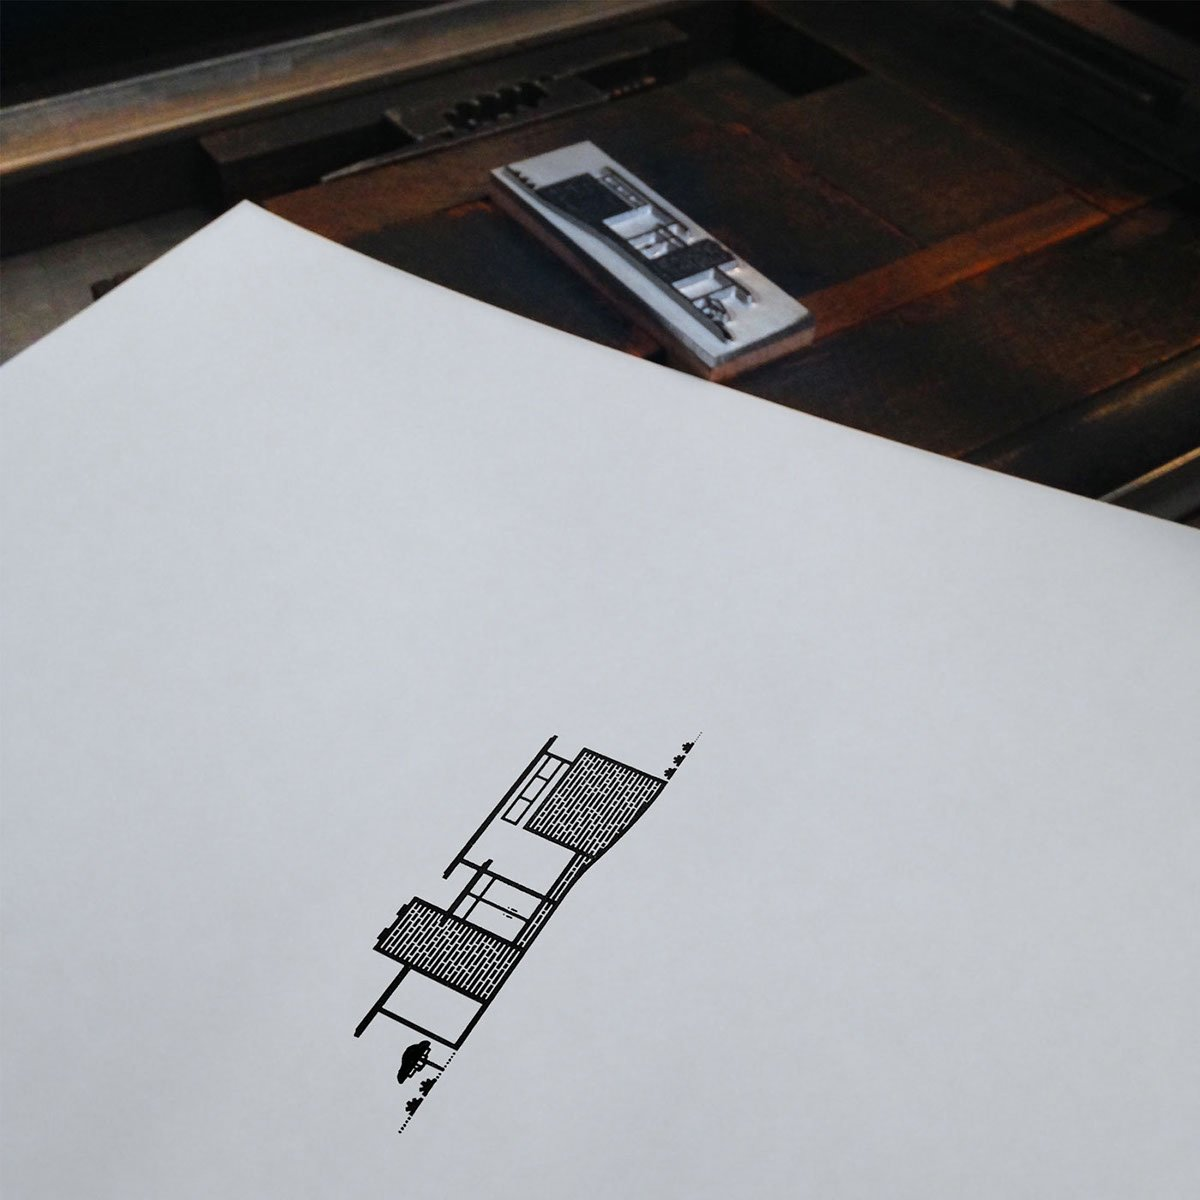 Printed on a traditional letterpress (with no emboss) using a magnesium plate and printed on Cranes Paper (600 gsm). Illustration by Michael Nÿkamp of mkn design.  Mid Century Modern Homes Collection: Illustrations by Michael Nÿkamp